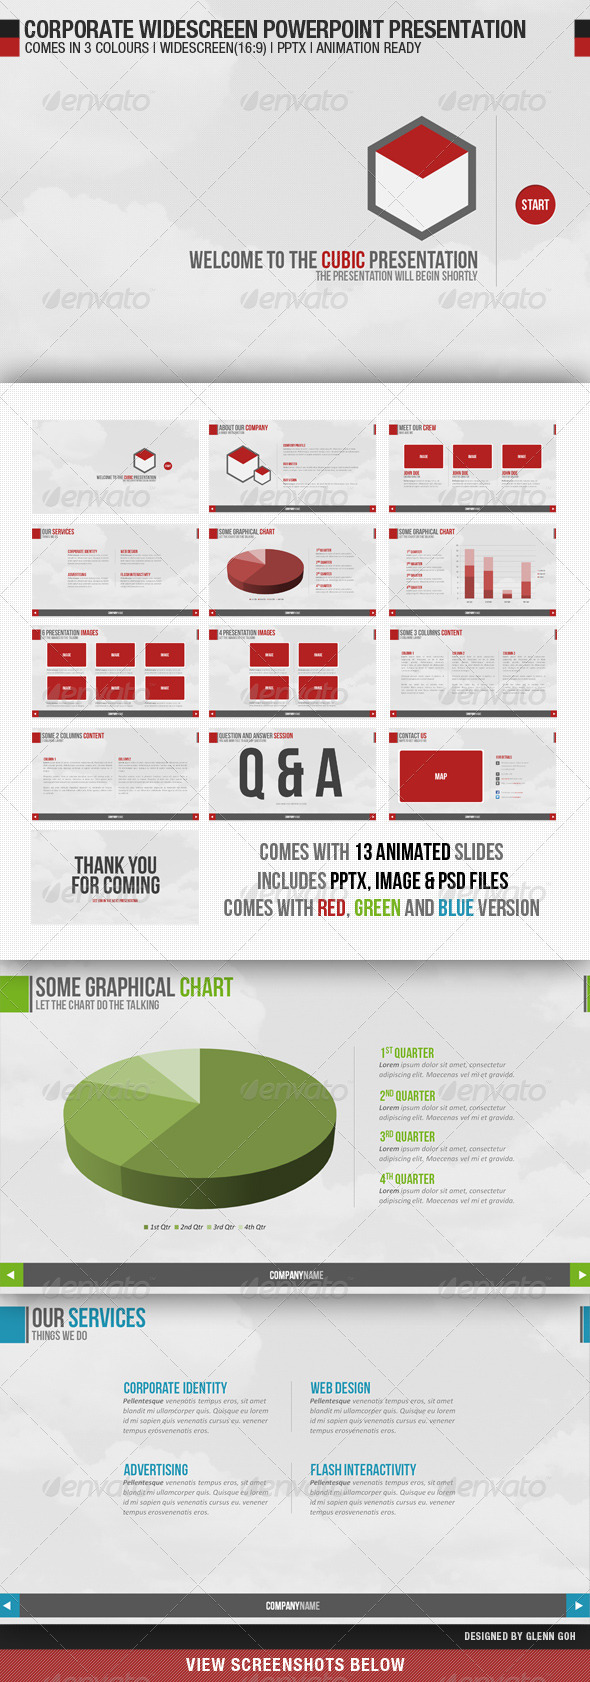 Graphic River Corporate Widescreen Powerpoint Presentation Presentation Templates -  Powerpoint Templates  Creative 513155